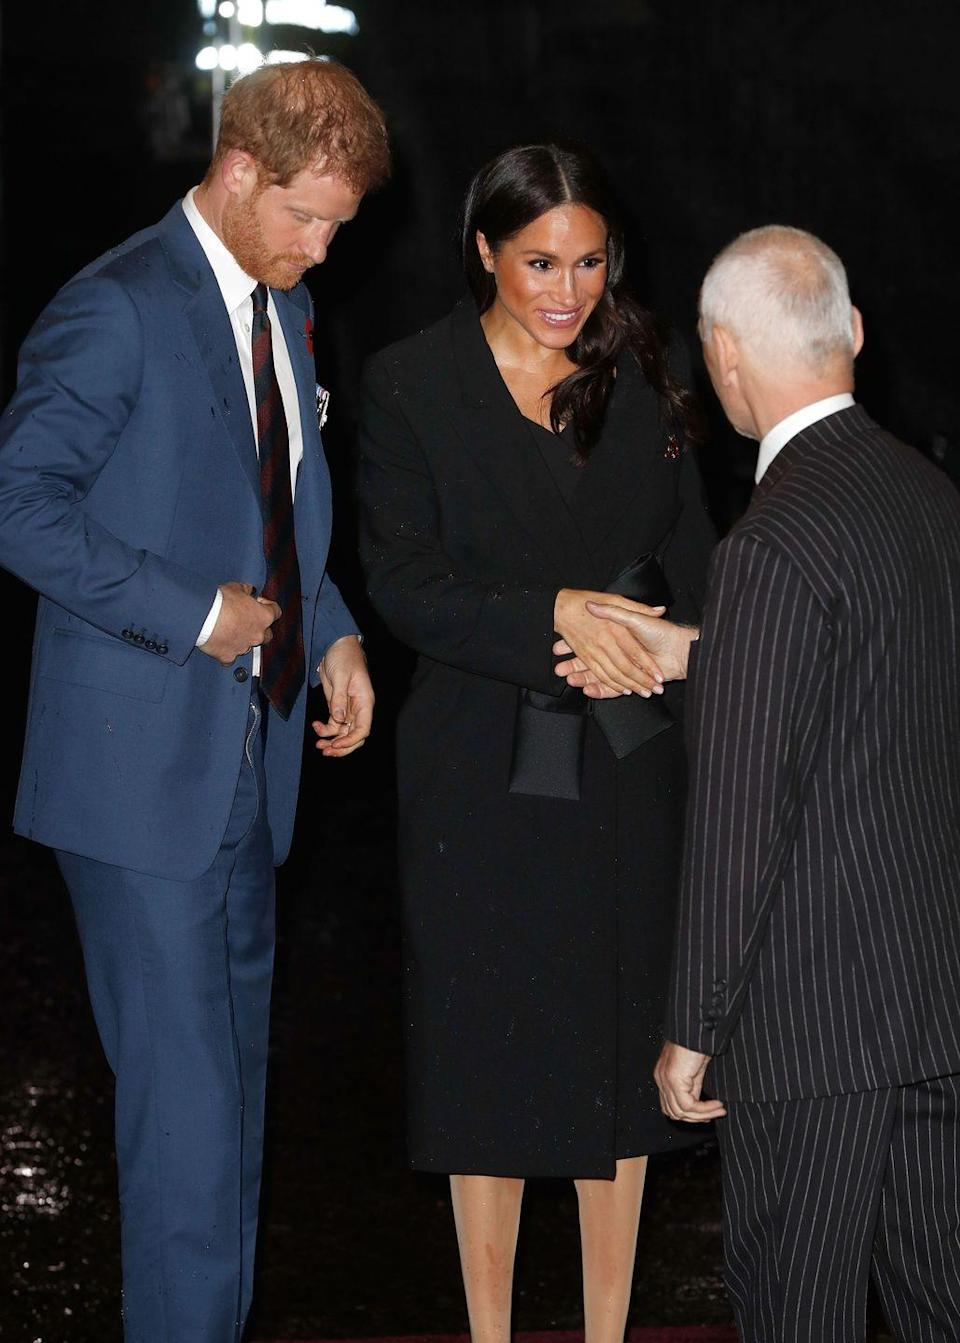 """<p>Meghan Markle sporting a <a href=""""https://www.net-a-porter.com/gb/en/Shop/Designers/Stella_McCartney"""" rel=""""nofollow noopener"""" target=""""_blank"""" data-ylk=""""slk:Stella McCartney"""" class=""""link rapid-noclick-resp"""">Stella McCartney</a> tie-detail coat (similar available here), over a black off-the-shoulder sheath dress by <a href=""""https://www.marksandspencer.com/double-crepe-bodycon-dress/p/p60214005?OmnitureRedirect=Double+Crepe+Bodycon+dress&source=affwindow&extid=af_a_Uncategorised_78888_Skimlinks&comgp=78888&cvosrc=affiliate.aw.78888&awc=1402_1542373349_f71aaa32f86cc1248315059389886495"""" rel=""""nofollow noopener"""" target=""""_blank"""" data-ylk=""""slk:M&S (which is only £49.50)"""" class=""""link rapid-noclick-resp"""">M&S (which is only £49.50)</a> to Royal Albert Hall on Saturday.</p><p>The event - which was the first Remembrance service attended by Markle since she joined the royal family earlier this year - saw the pregnant star team the look with a <a href=""""https://www.net-a-porter.com/gb/en/Shop/Designers/Stella_McCartney"""" rel=""""nofollow noopener"""" target=""""_blank"""" data-ylk=""""slk:Stella McCartney"""" class=""""link rapid-noclick-resp"""">Stella McCartney</a> shaggy deer faux leather crossbody bag, her favourite Manolo Blahnik black suede BB pumps, and earrings by Zofia Day<br></p>"""